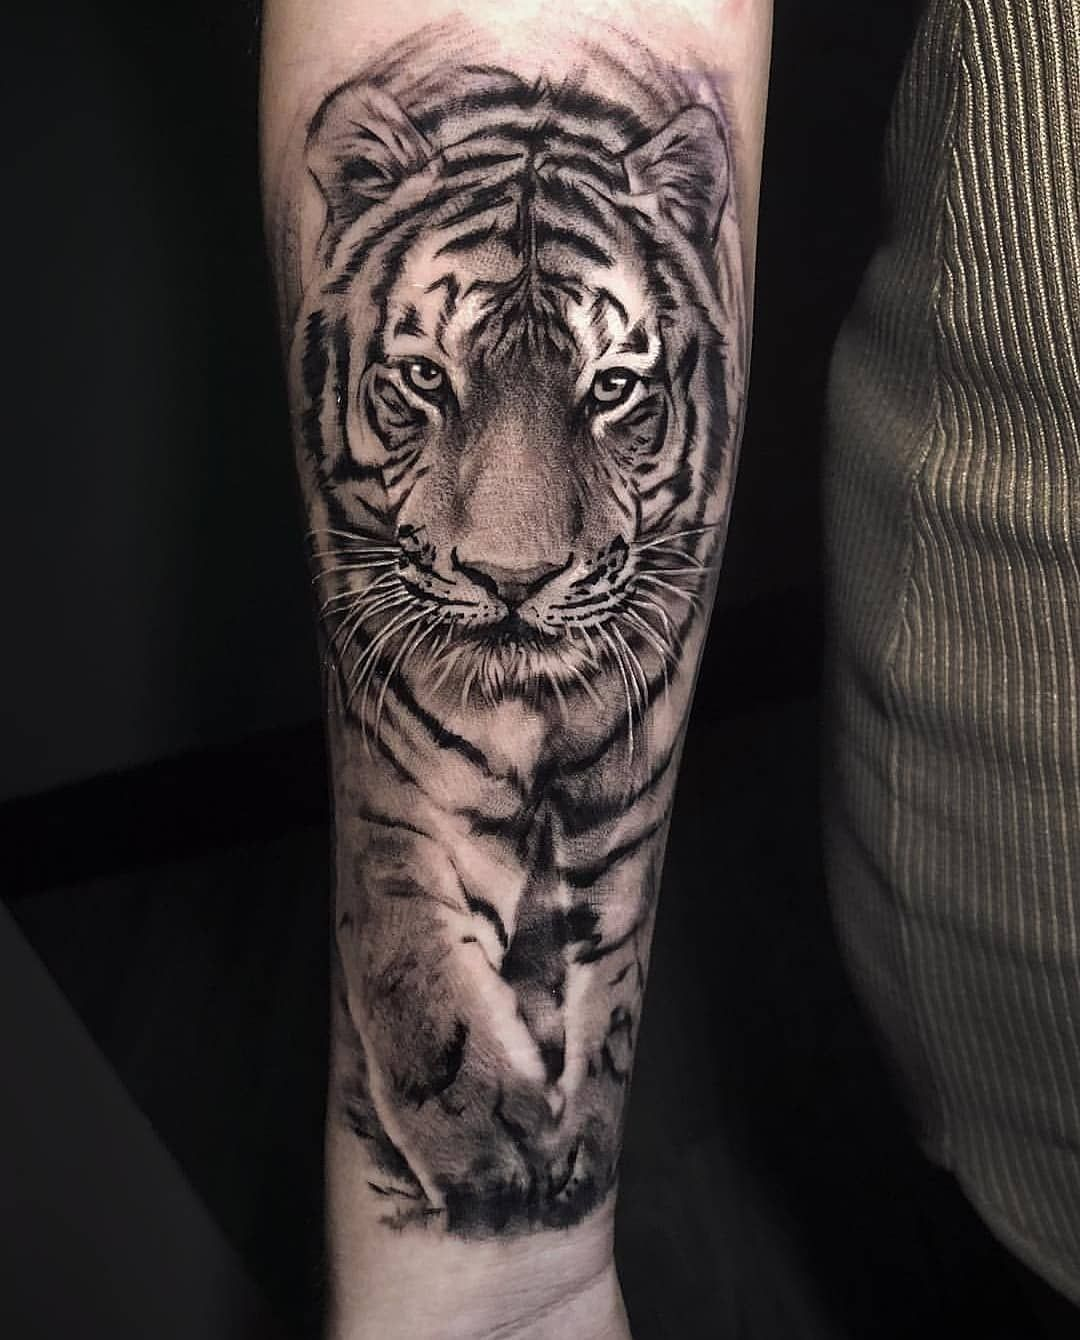 Tiger tattoo 1